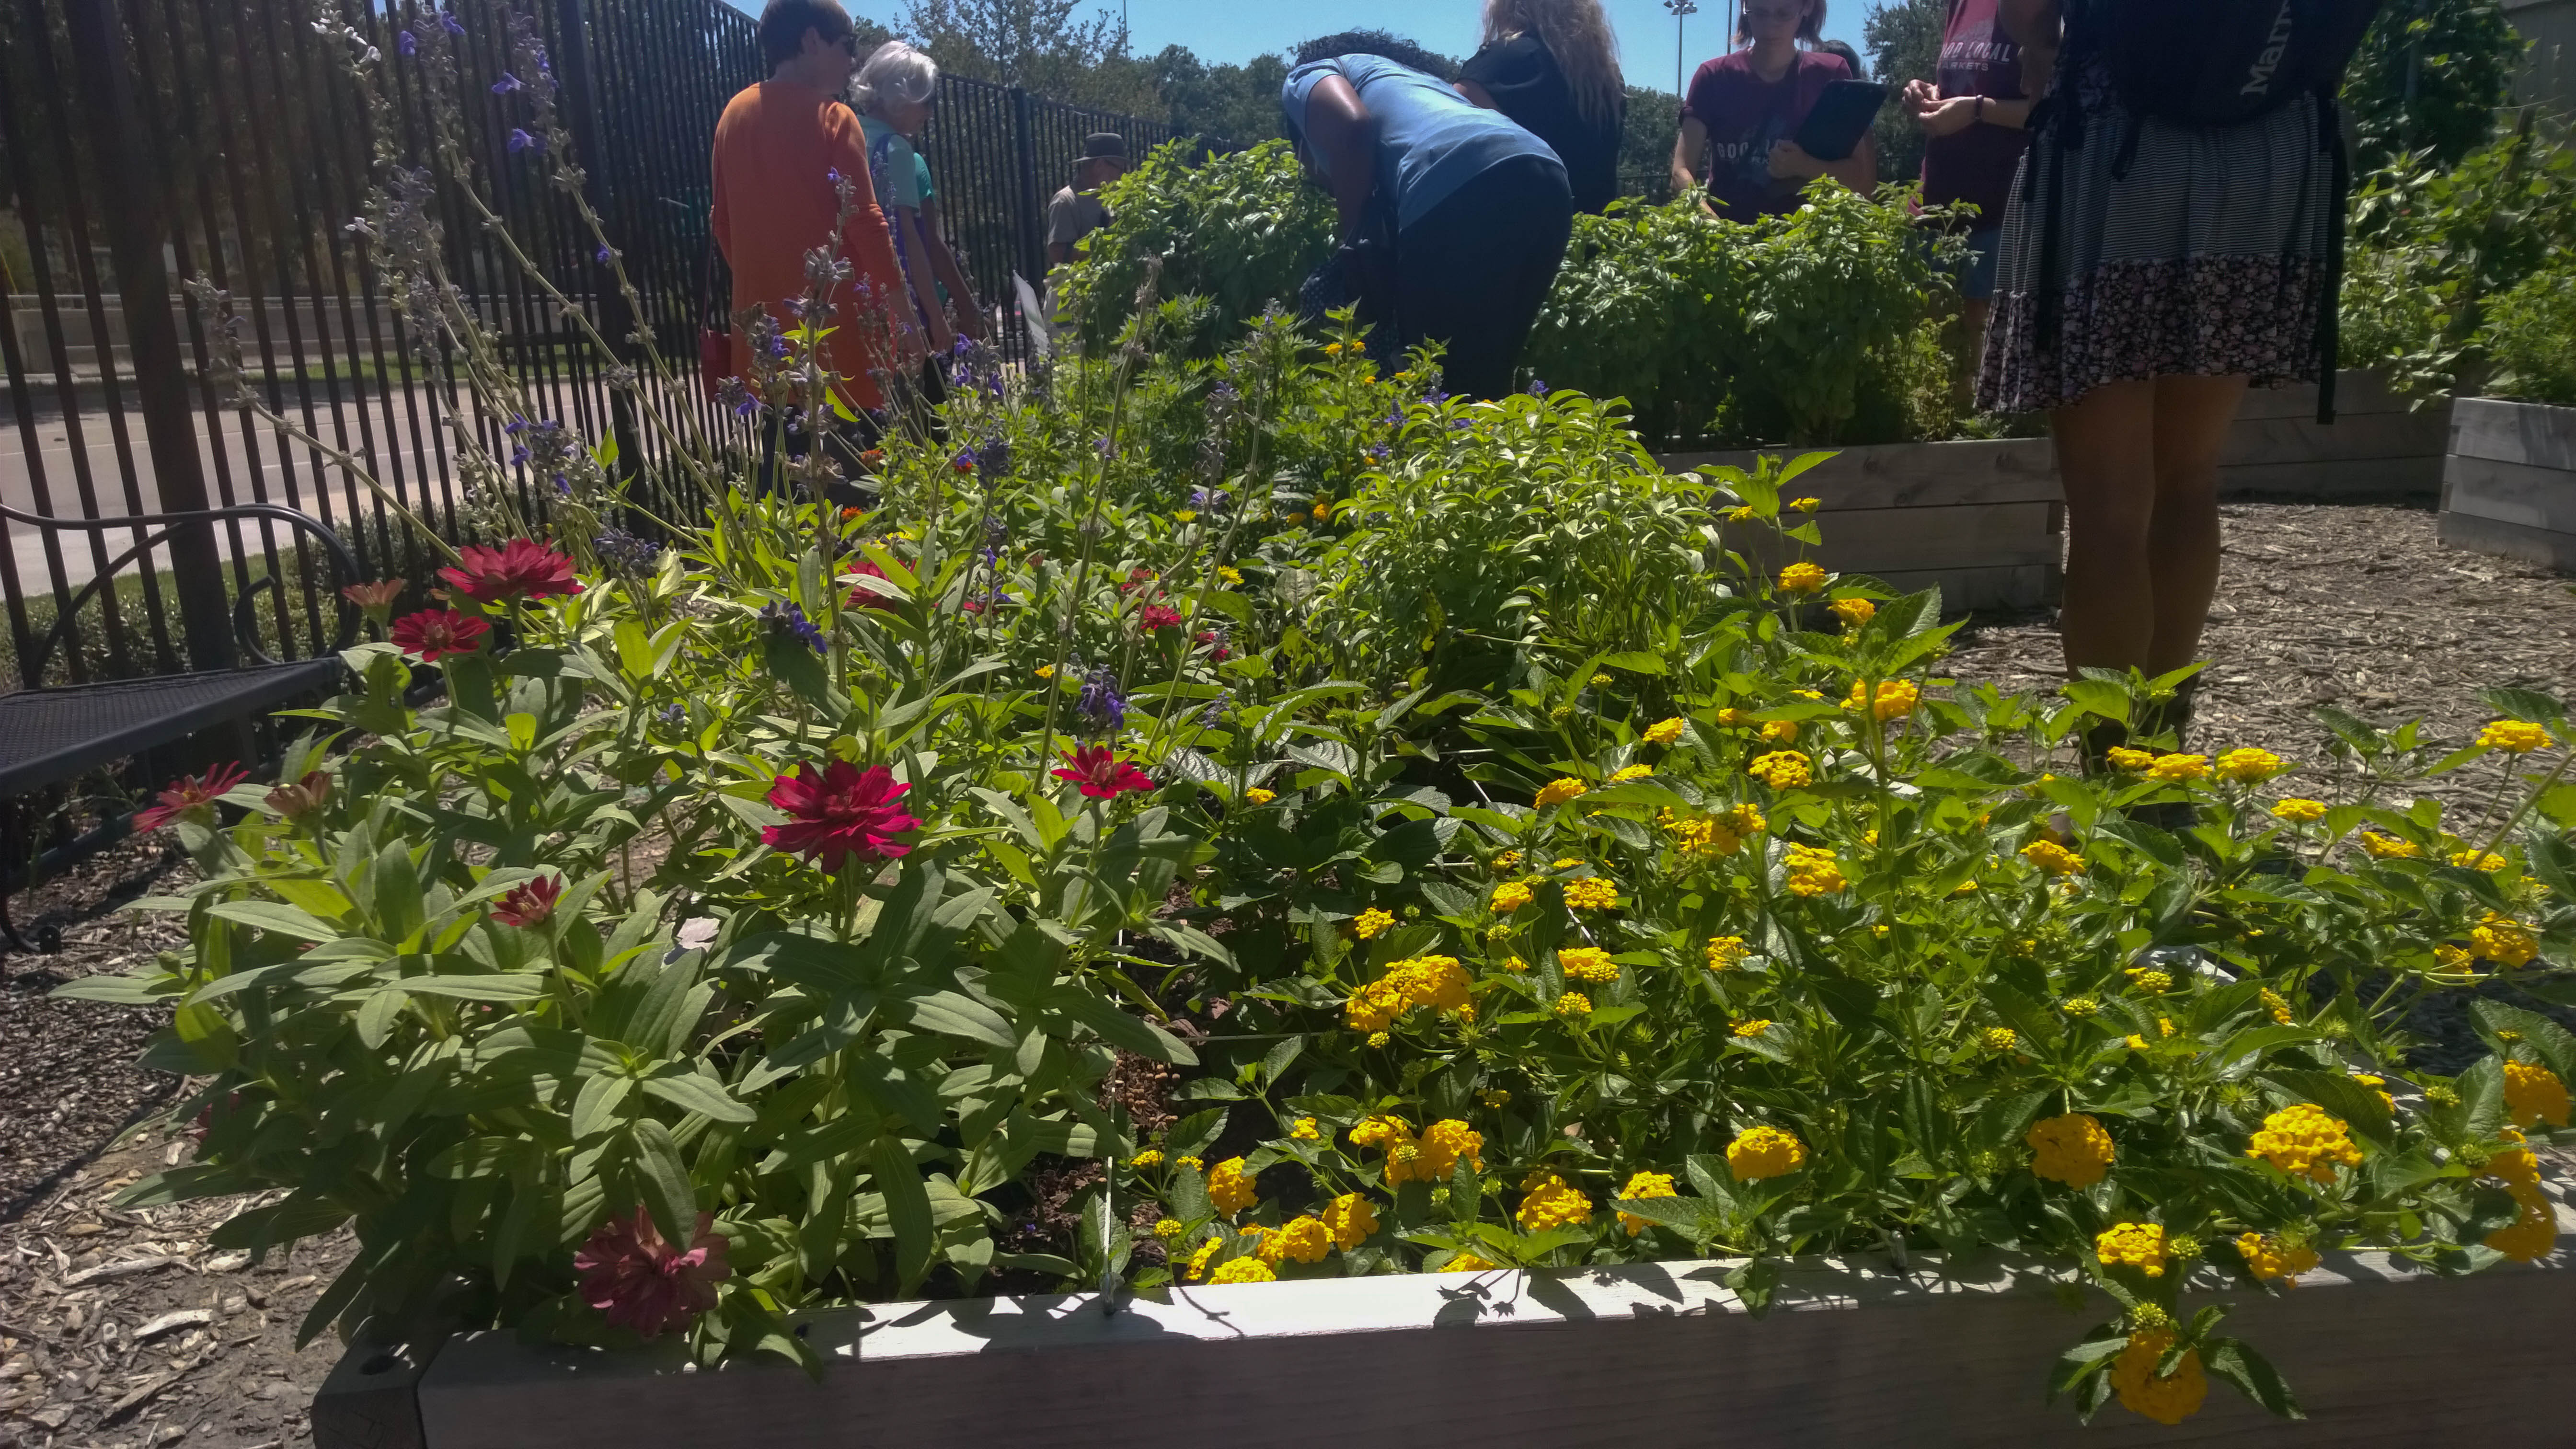 Local foods local places garden tour greendallas for Local landscape gardeners